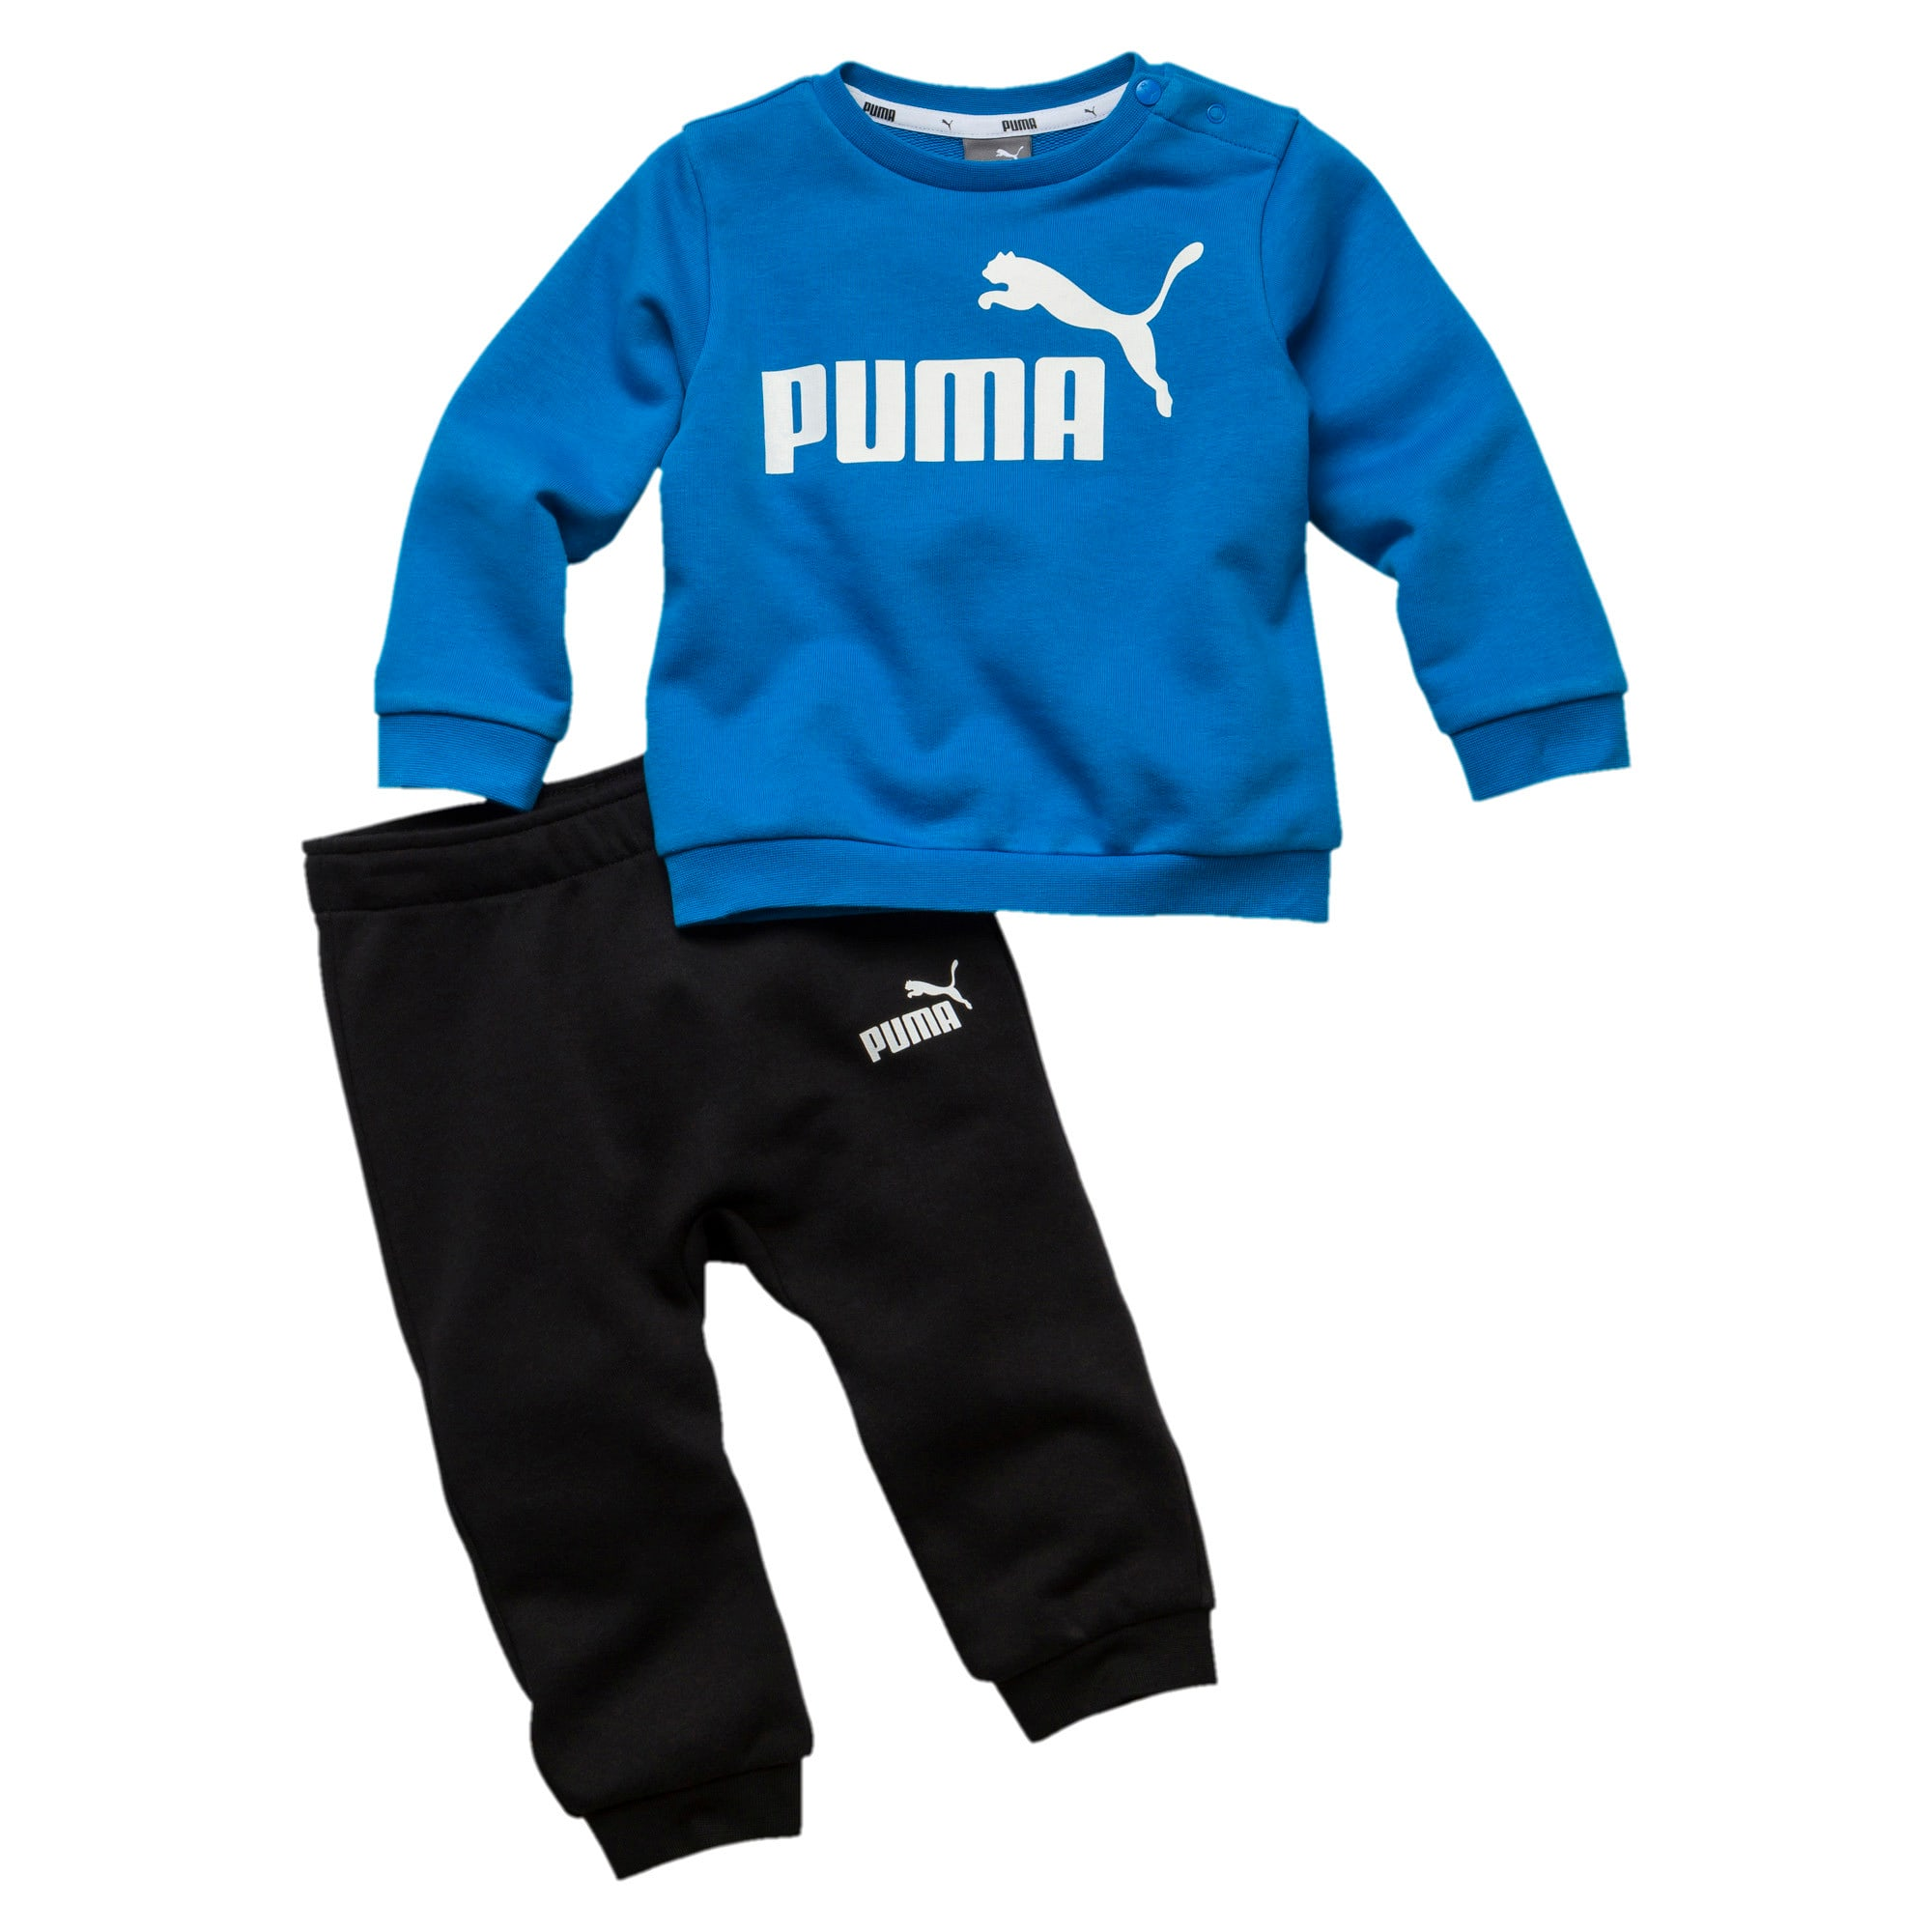 Thumbnail 1 of Minicats Essentials Babies' Jogger, Indigo Bunting, medium